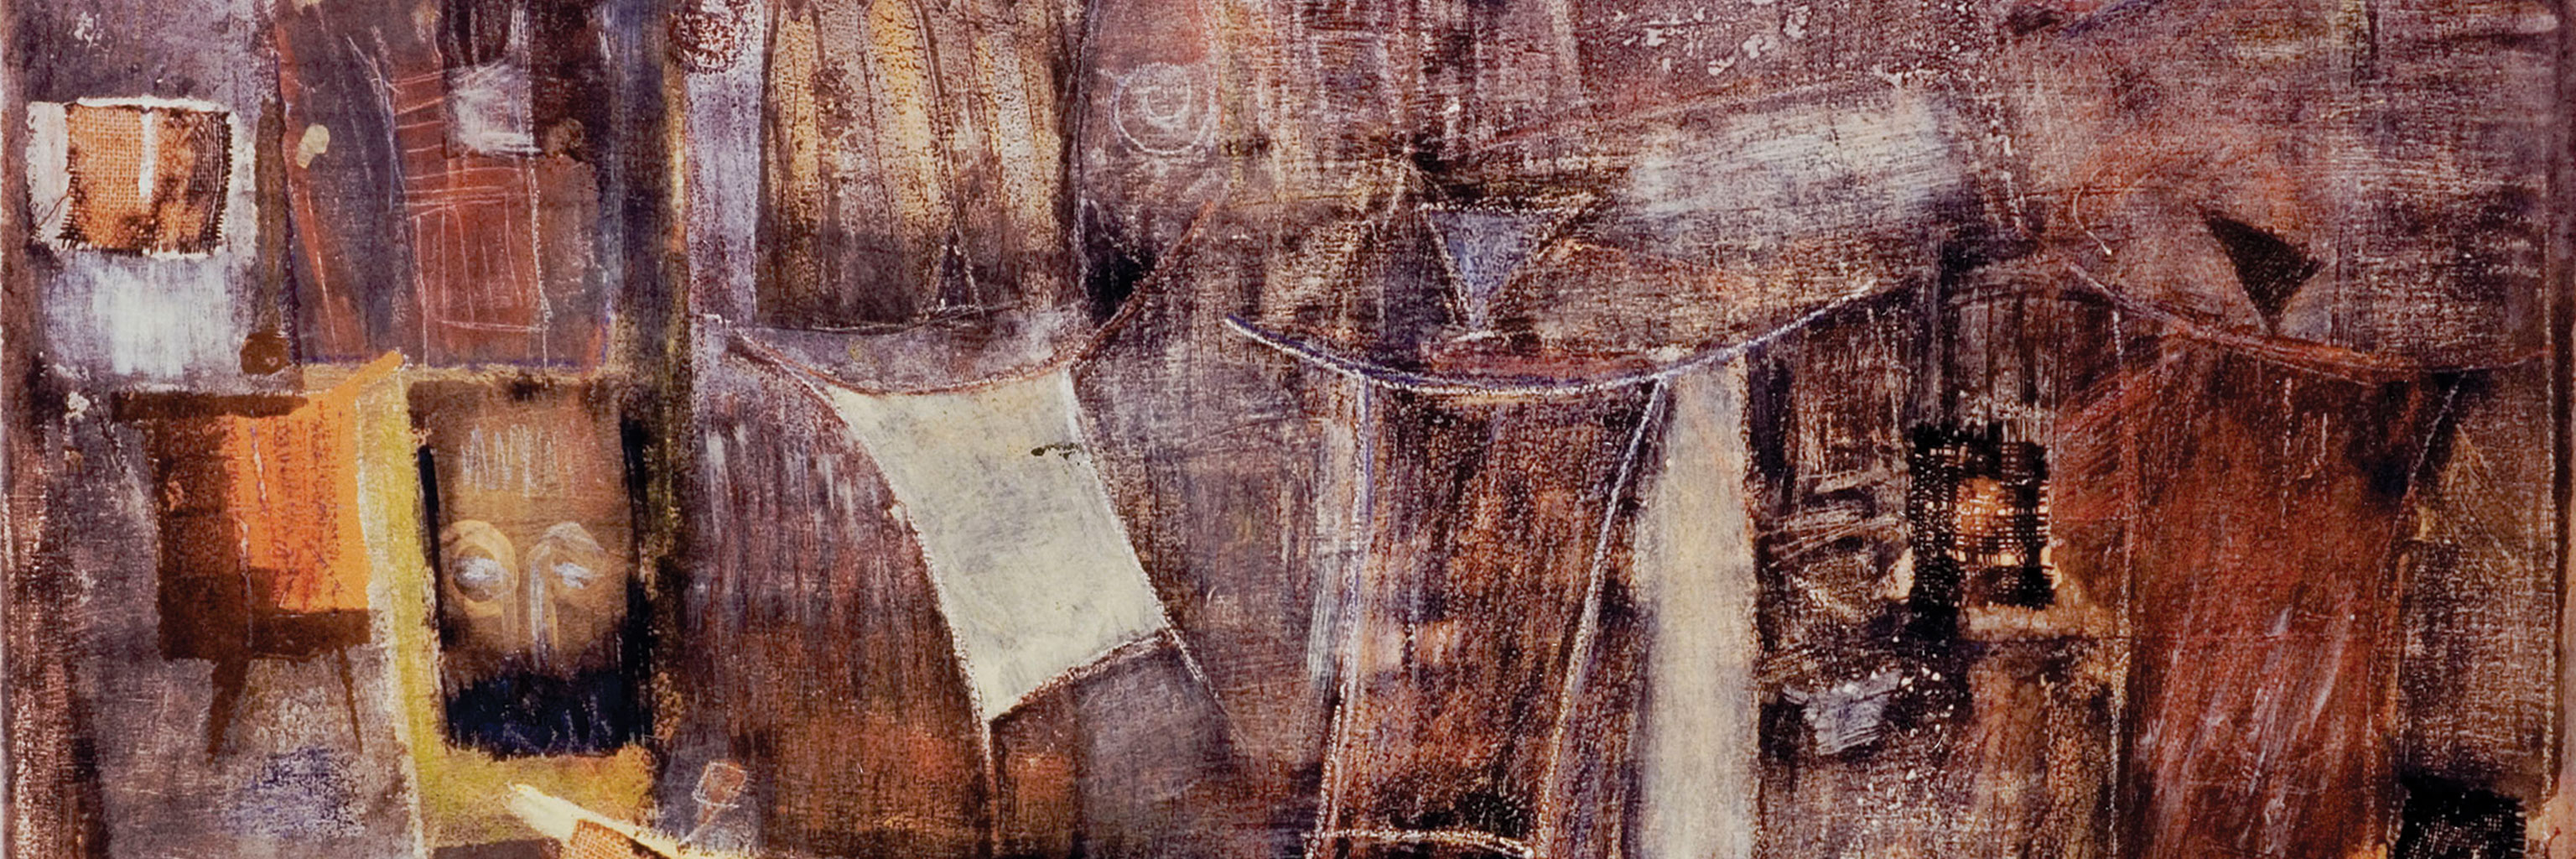 Kalidou Sy, Village, 2000. Acrylic, clay, and burlap on canvas